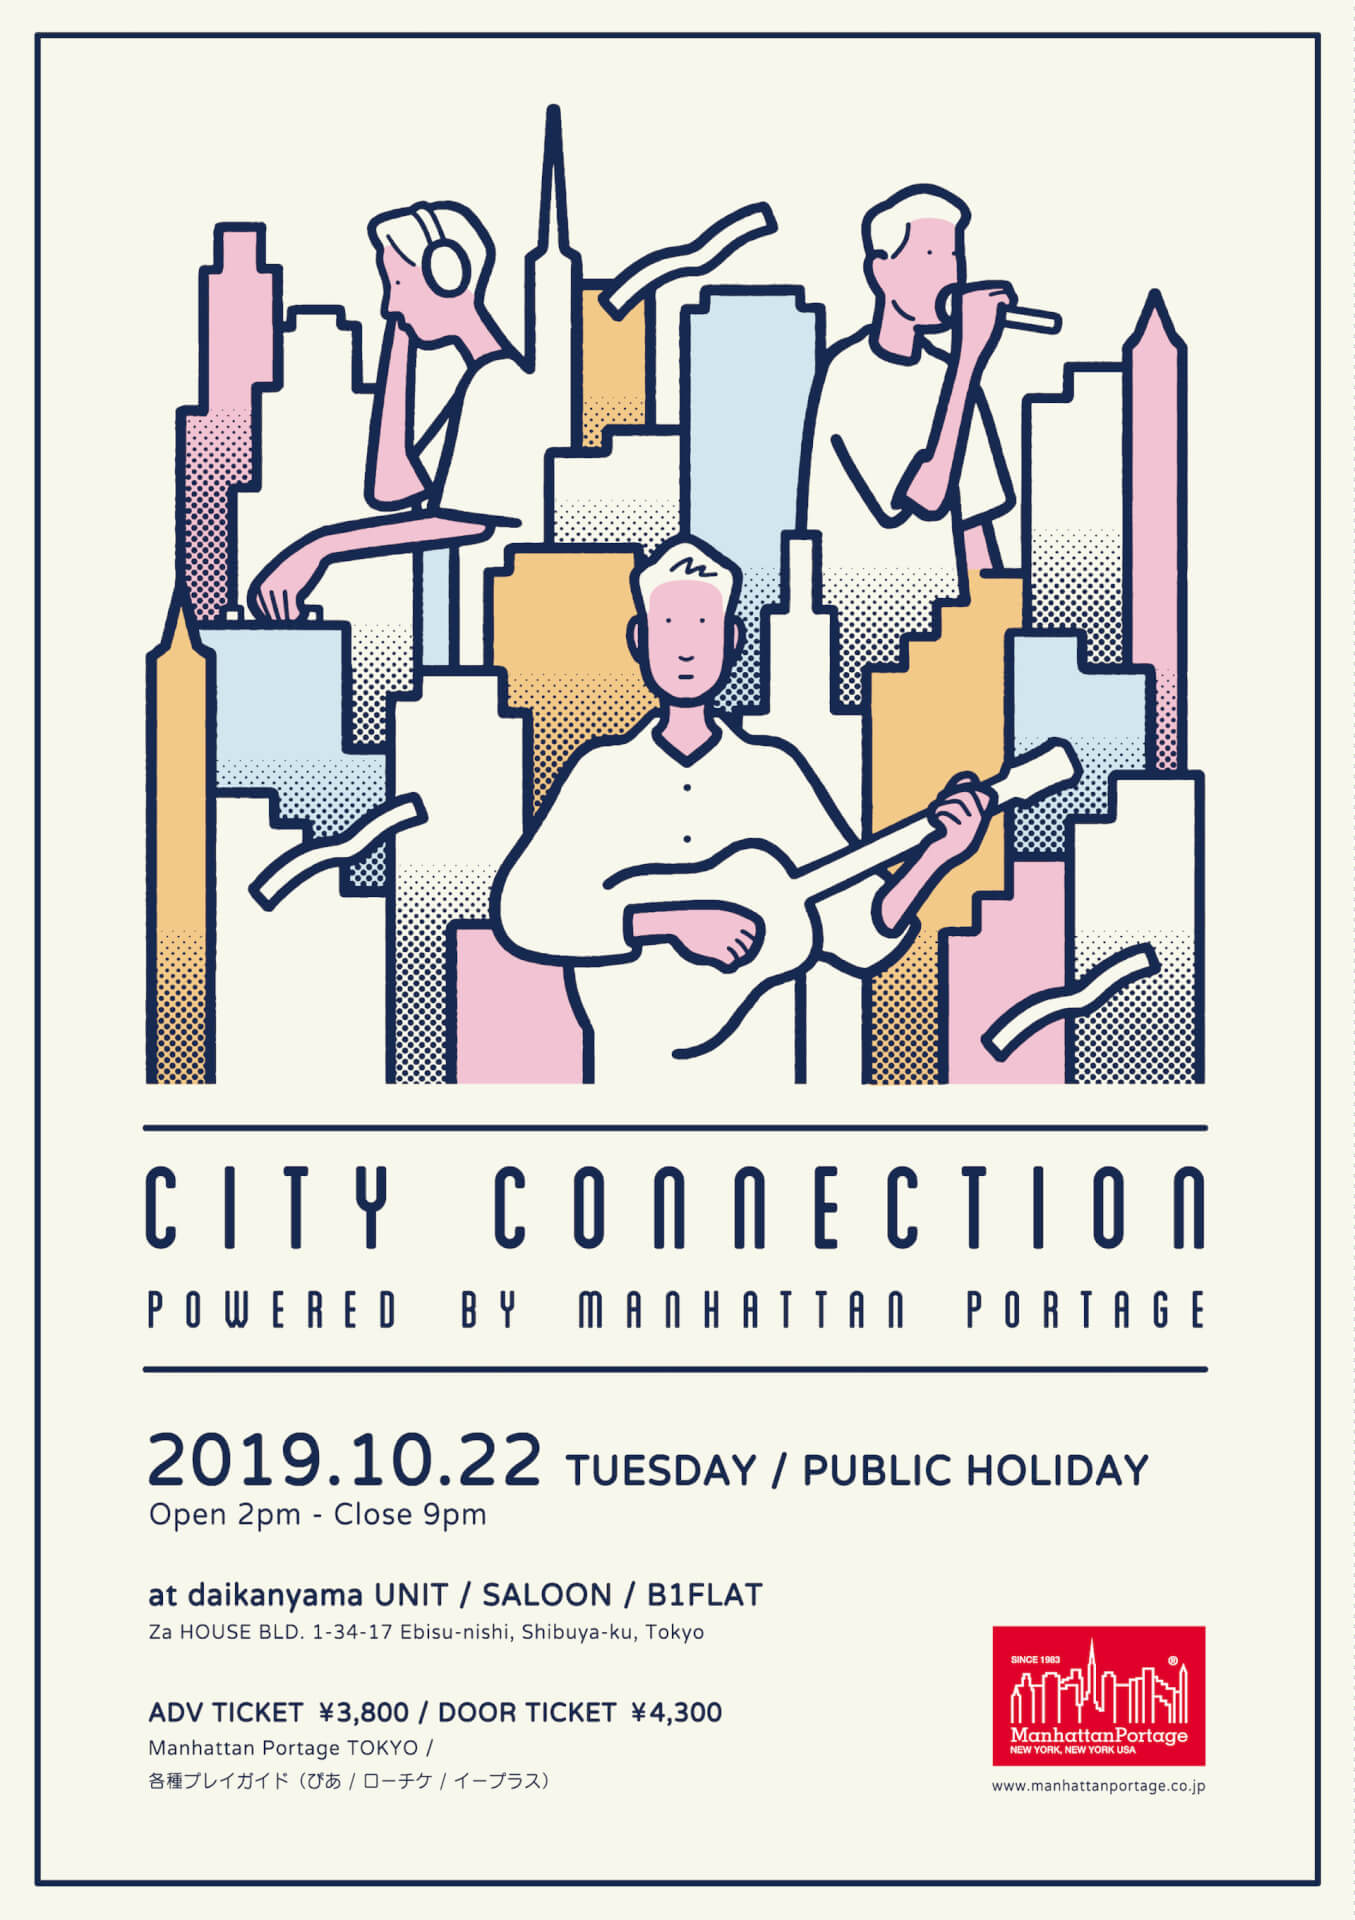 Manhattan Portageによる都市型音楽プロジェクト<City Connection>が始動 キックオフイベントにtofubeats、PAELLAS、D.A.N.(DJ SET)、in-d、dooooら music190905-city-connection-1